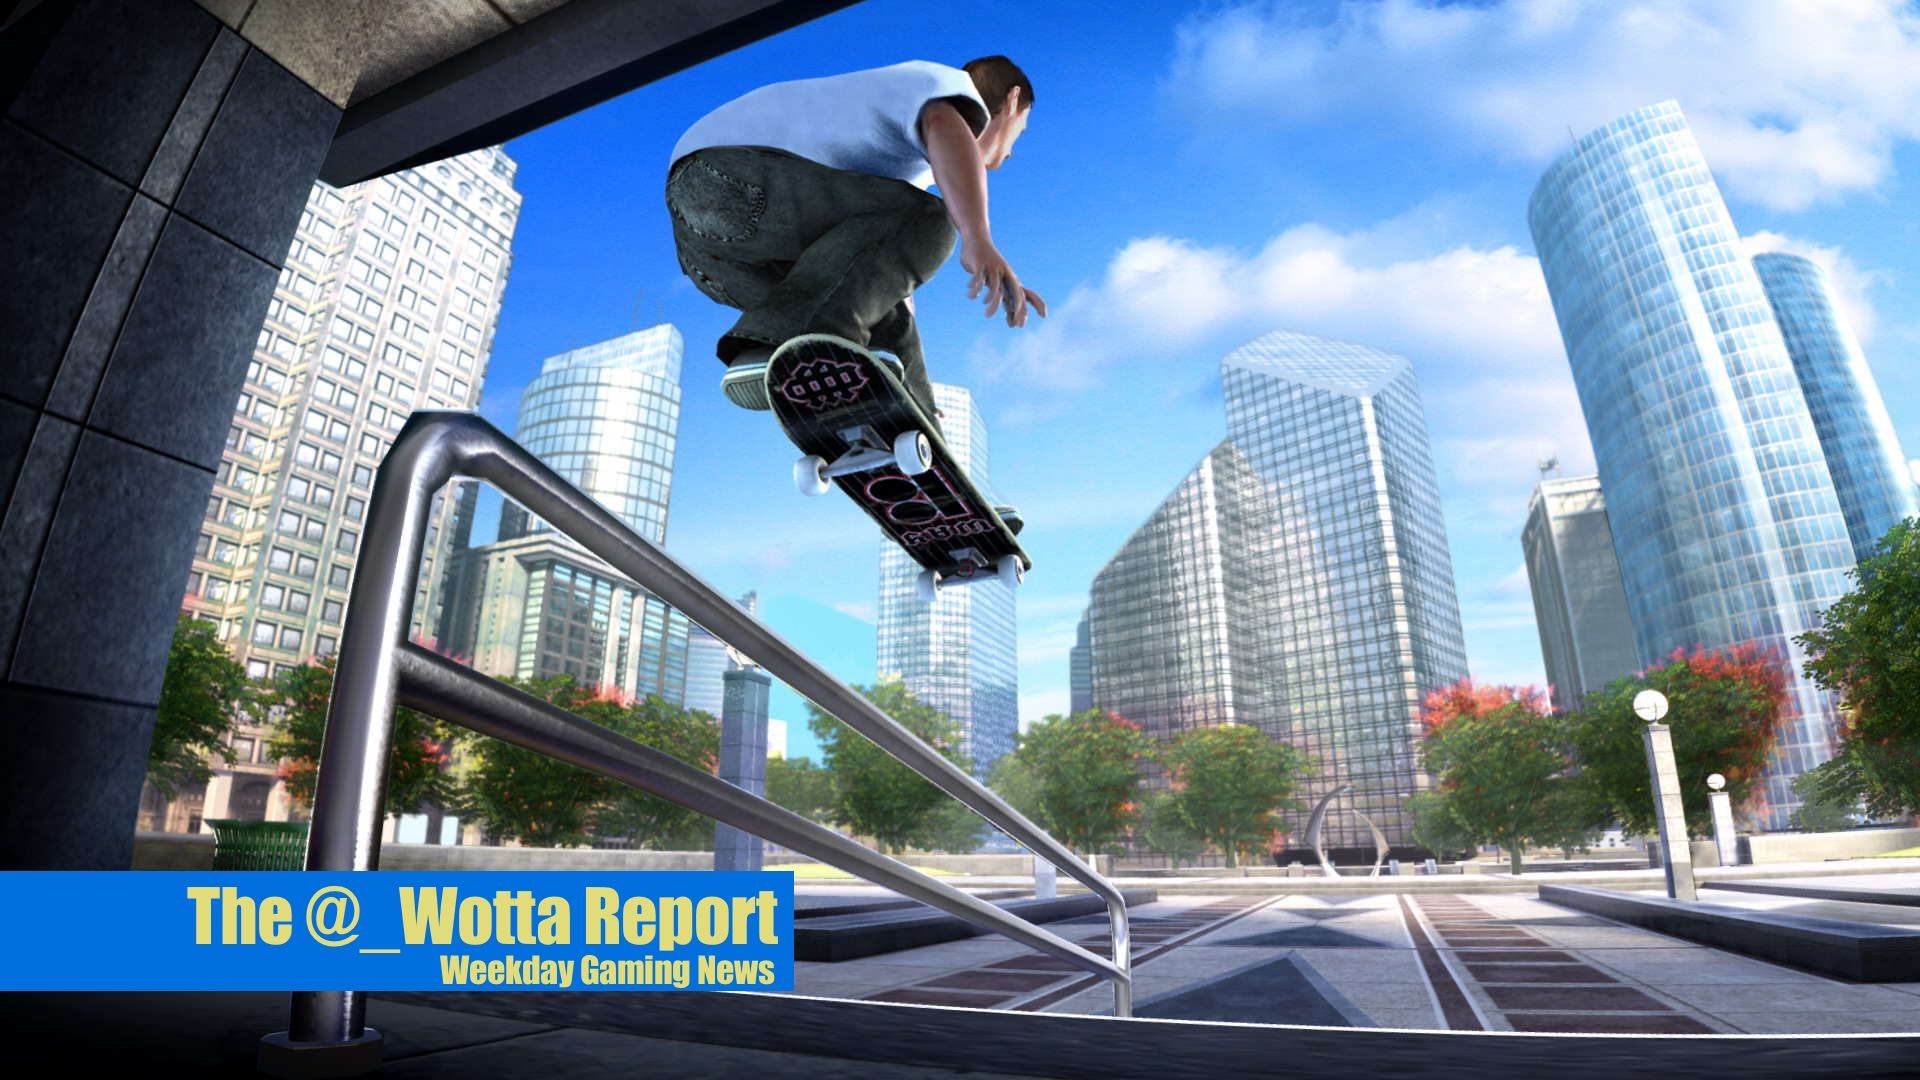 The @_Wotta Report – Resident Evil 7 tops the Charts, Dev teases Skate 4 | Weekday Gaming News